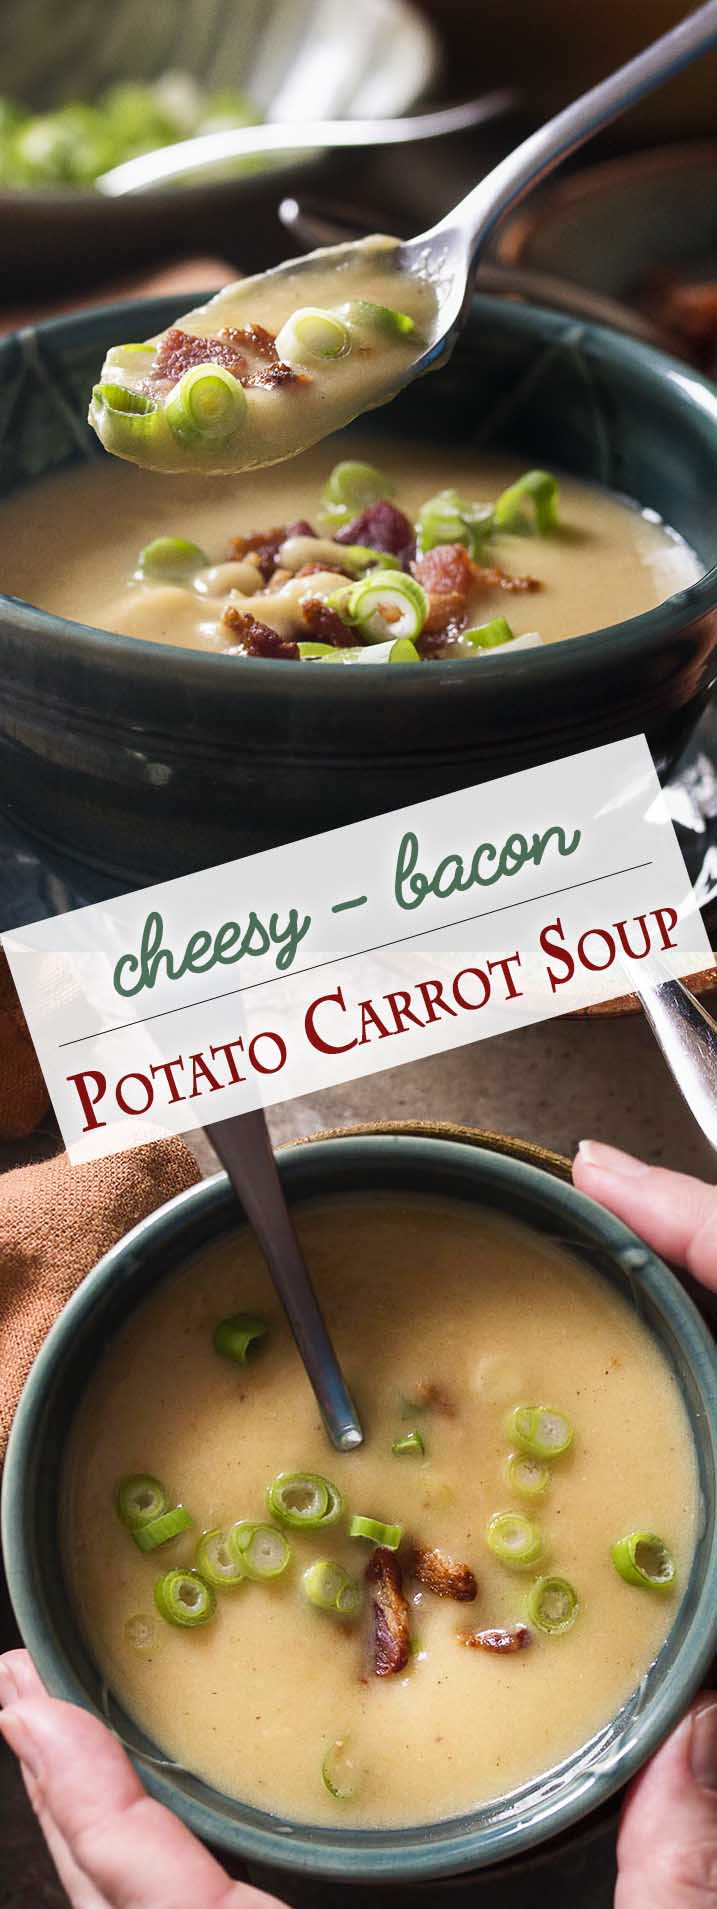 My creamless creamy potato carrot soup is full of flavor from buttery yellow potatoes, sweet carrots, bacon fat, and sharp cheddar cheese. Pureed until smooth and topped with crispy bacon and scallions, this soup is great comfort food for dinner on chilly nights.   justalittlebitofbacon.com #glutenfree #souprecipes #potatoes #comfortfood #bacon